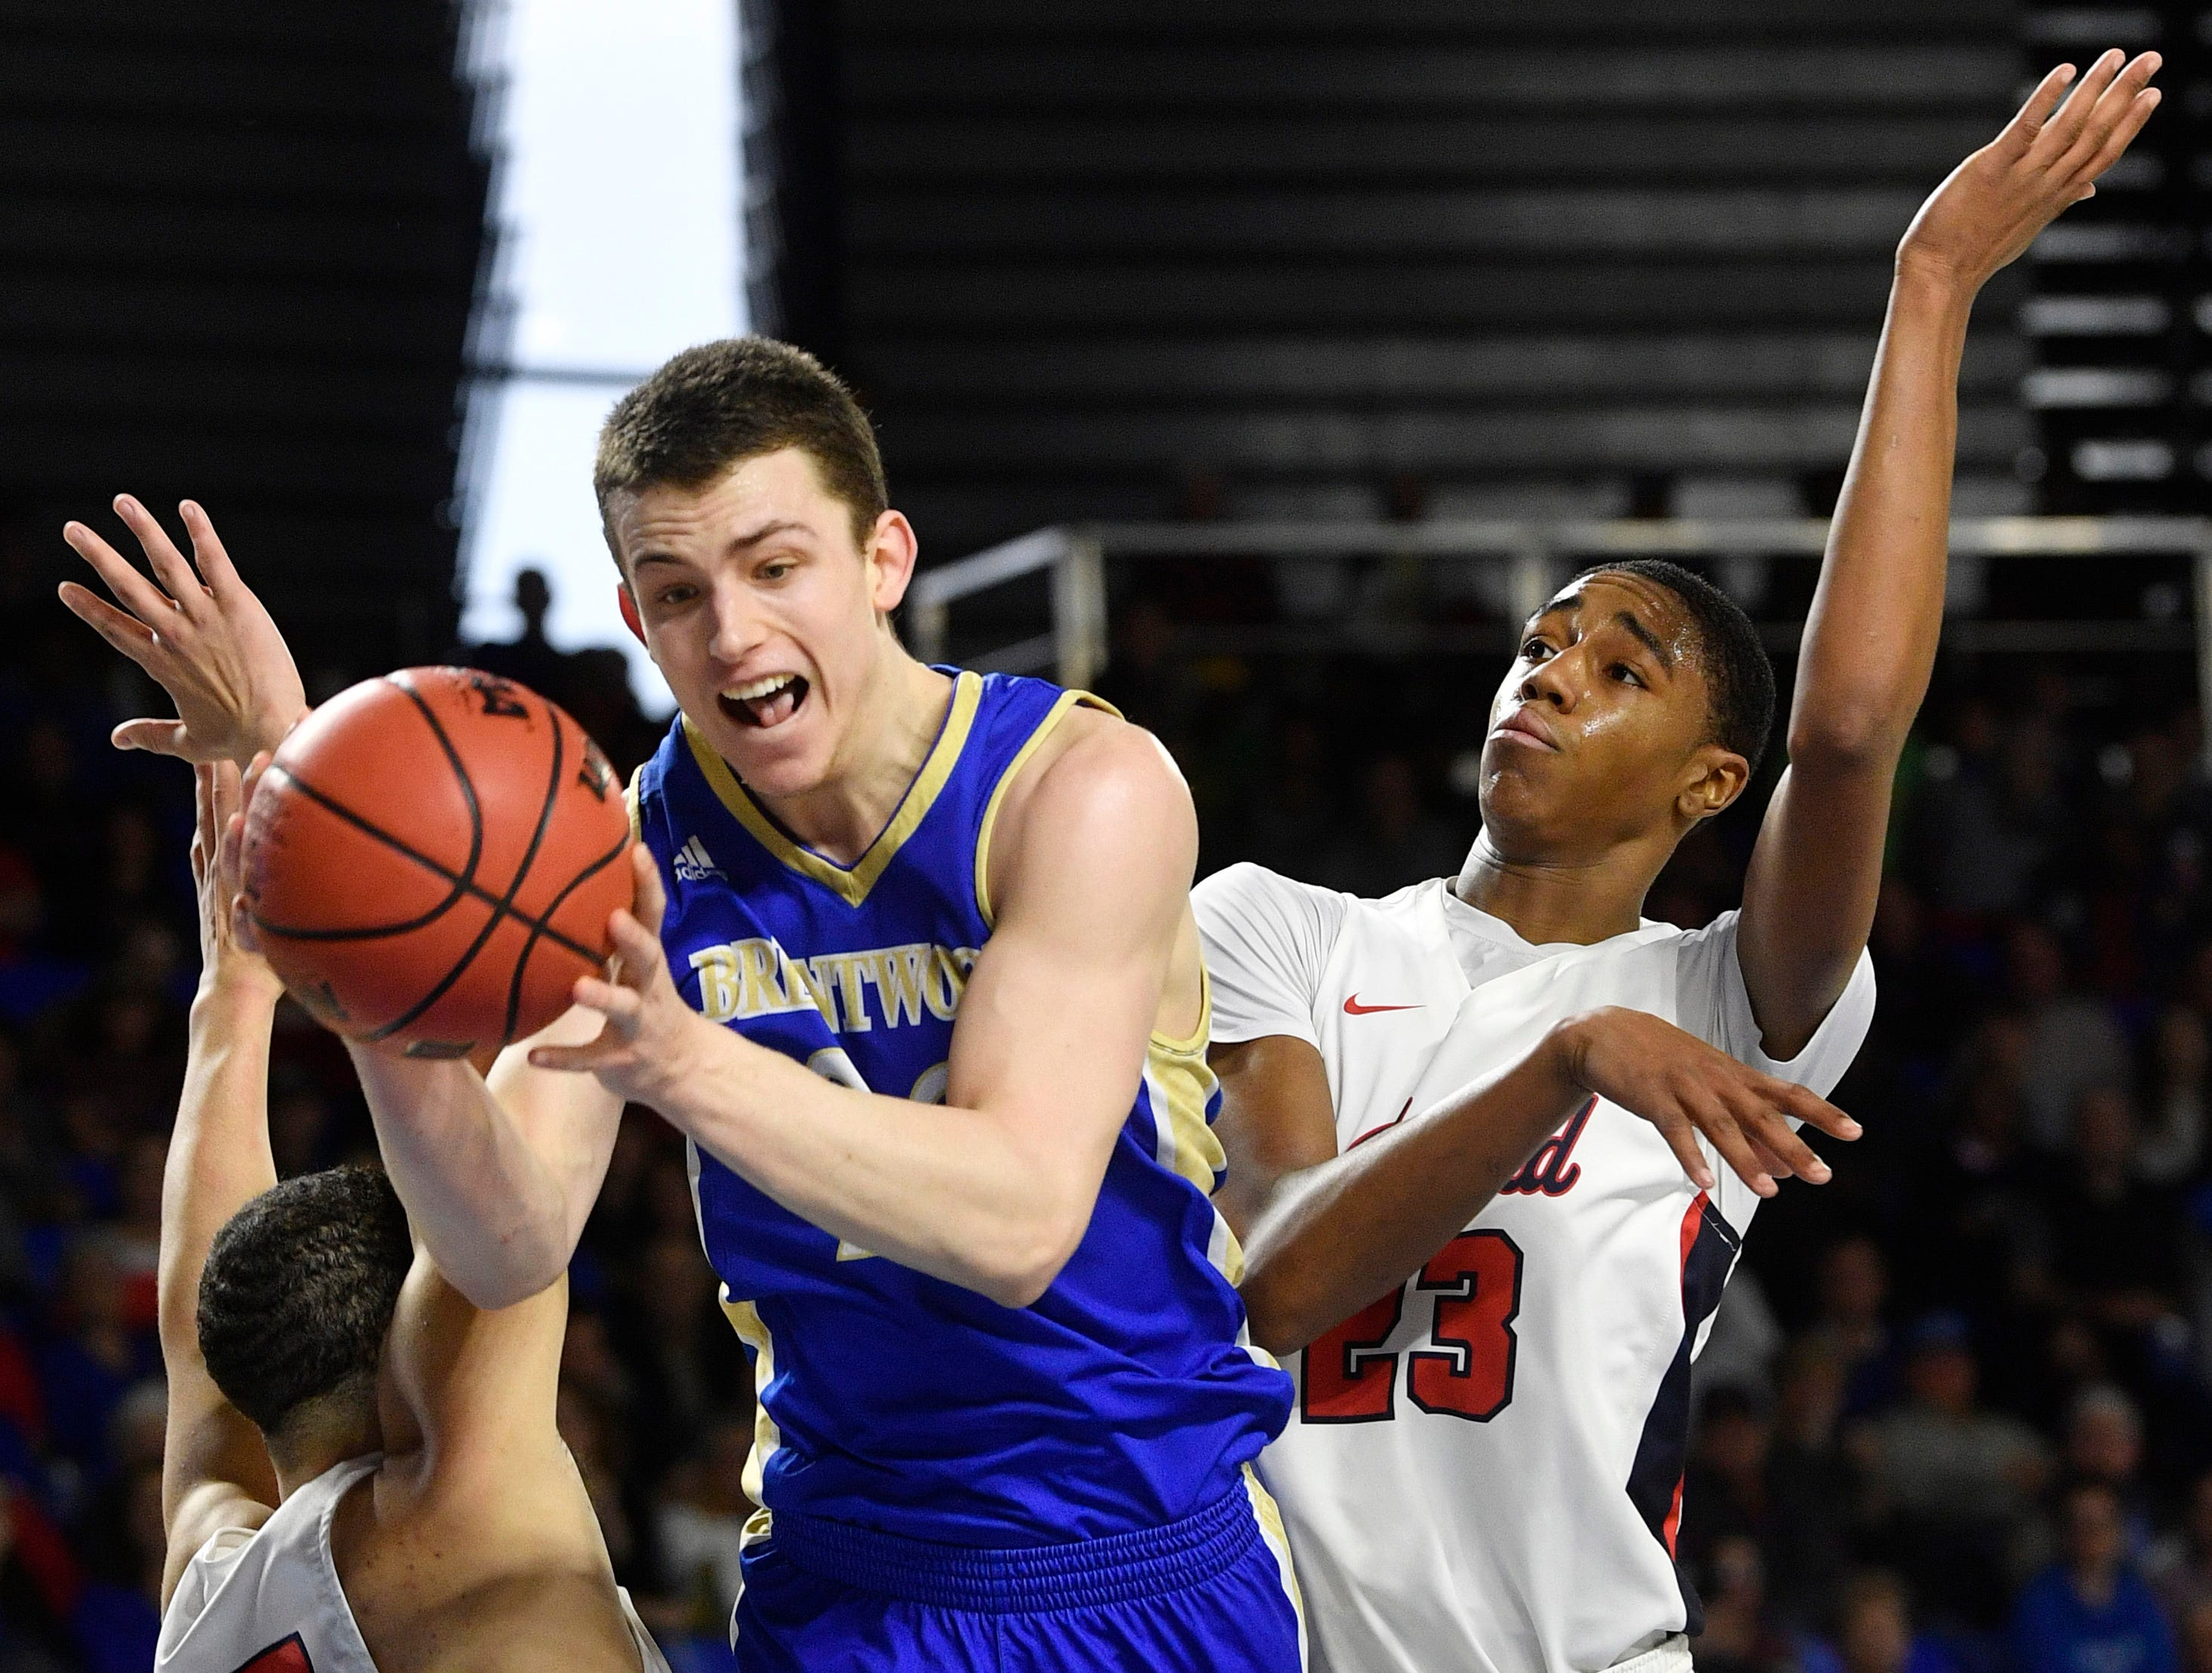 Brentwood's Harry Lackey (22) fights through defenders as Brentwood plays Oakland in the TSSAA Class AAA quarterfinals  Thursday, March 14, 2019, in Murfreesboro, Tenn.